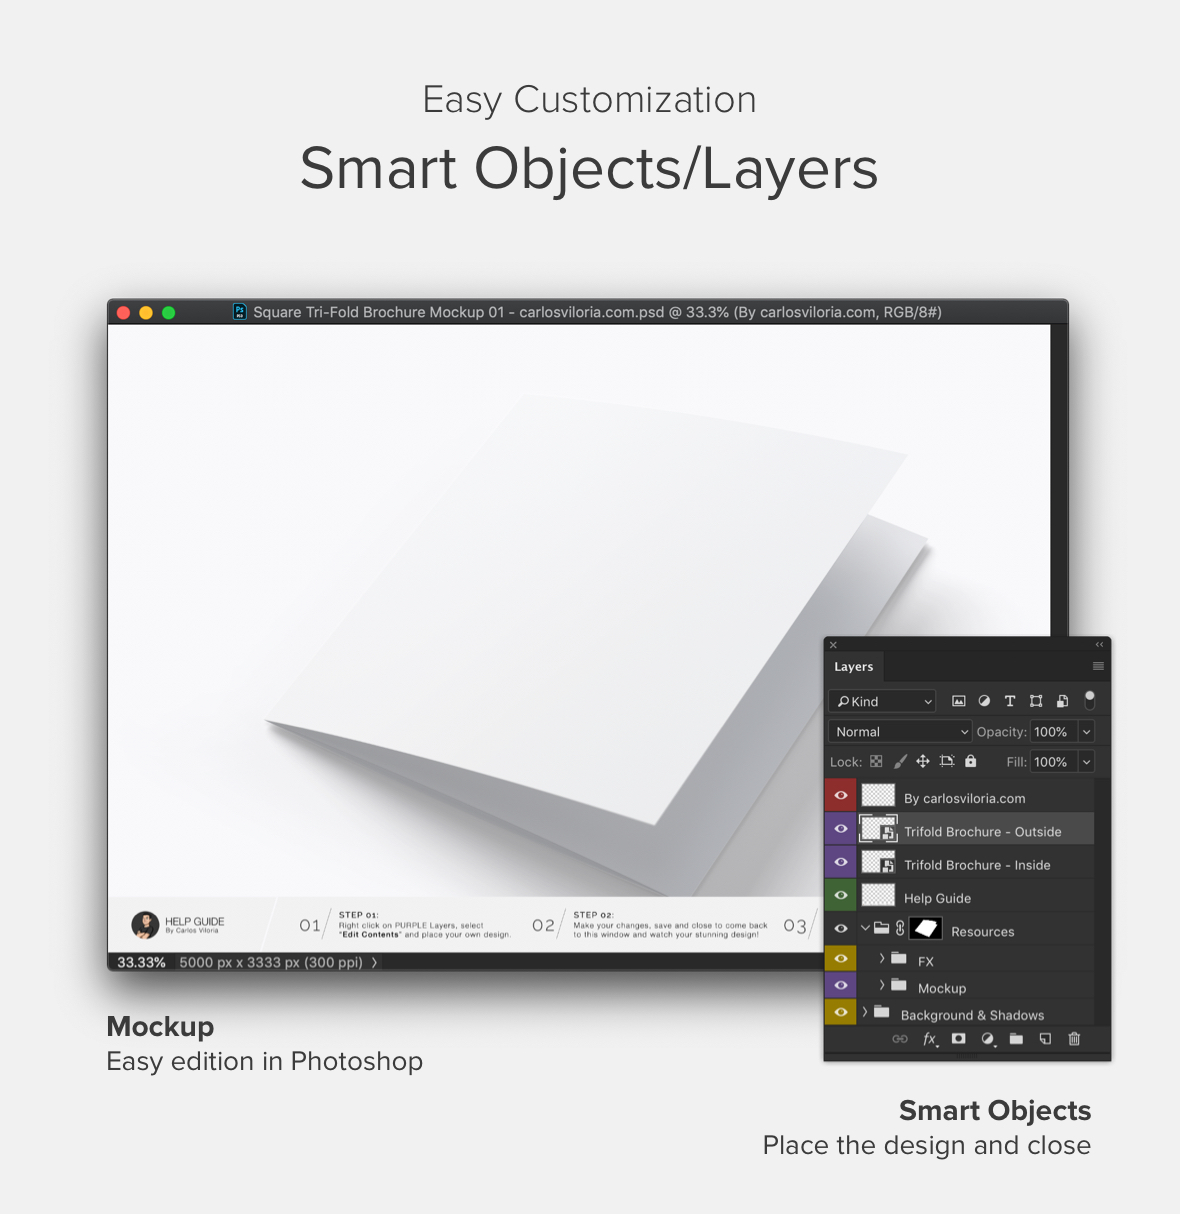 Square Trifold Brochure Cover Mockup - how to use